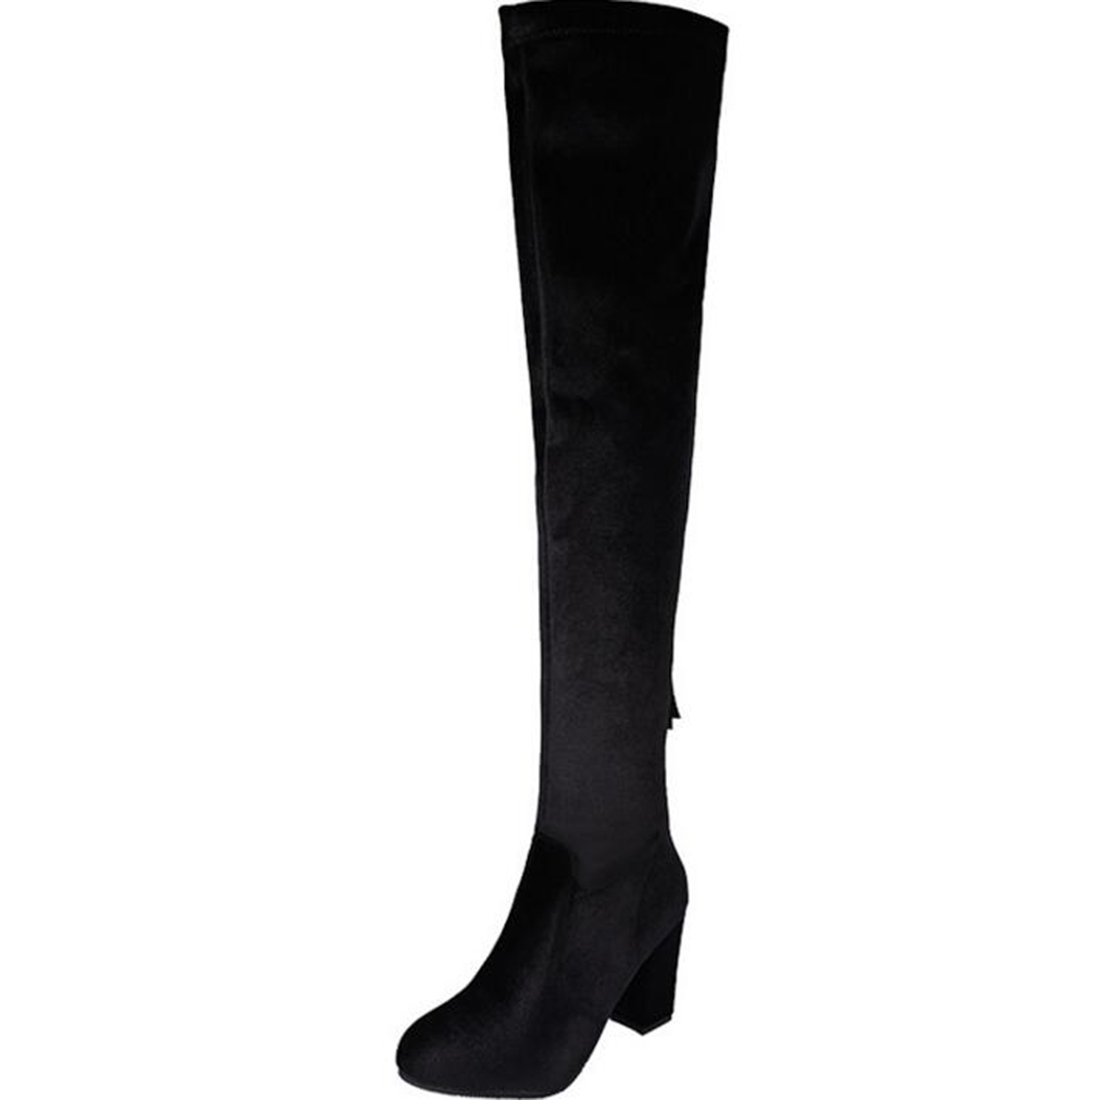 Womens Velvet Round Toe Over Knee Boots High Heel  Stretch Suede Over the Knee Boots Fashion Slim Thigh High Boots Plus Shoes high heel real leather pointy suede slim thigh women boots stretch velvet over the knee sexy extreme stiletto shoes sheepskin